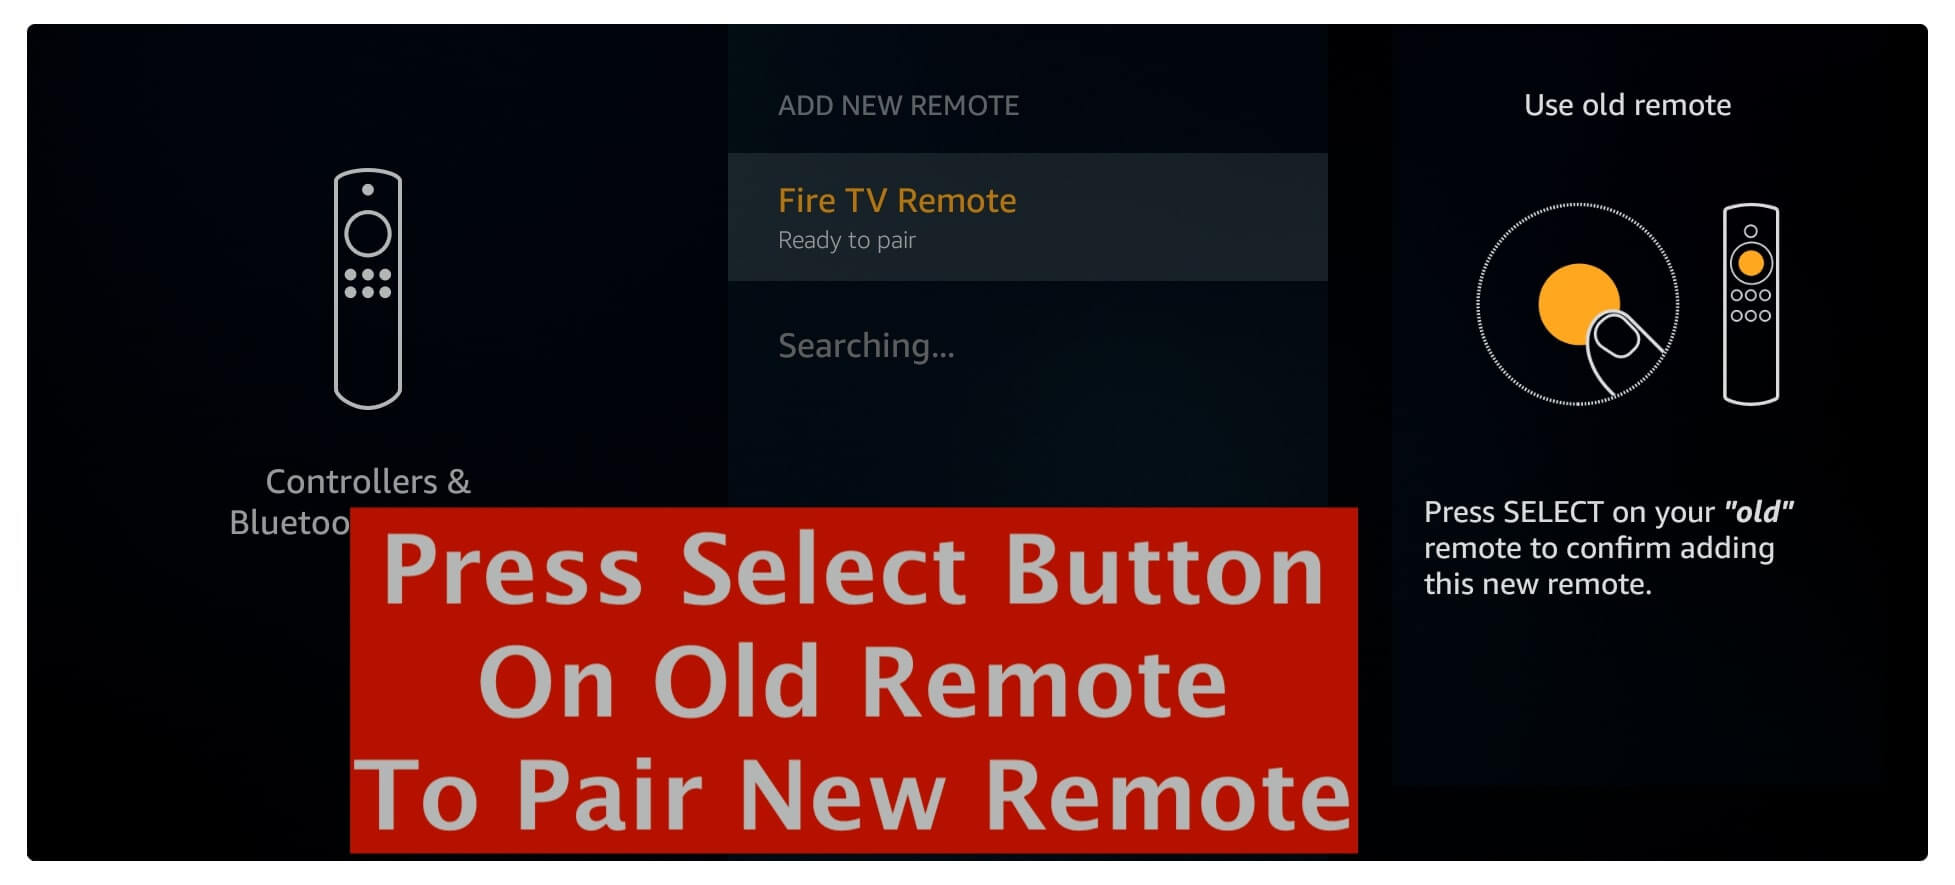 Press-Select-Button-on-Old-Remote